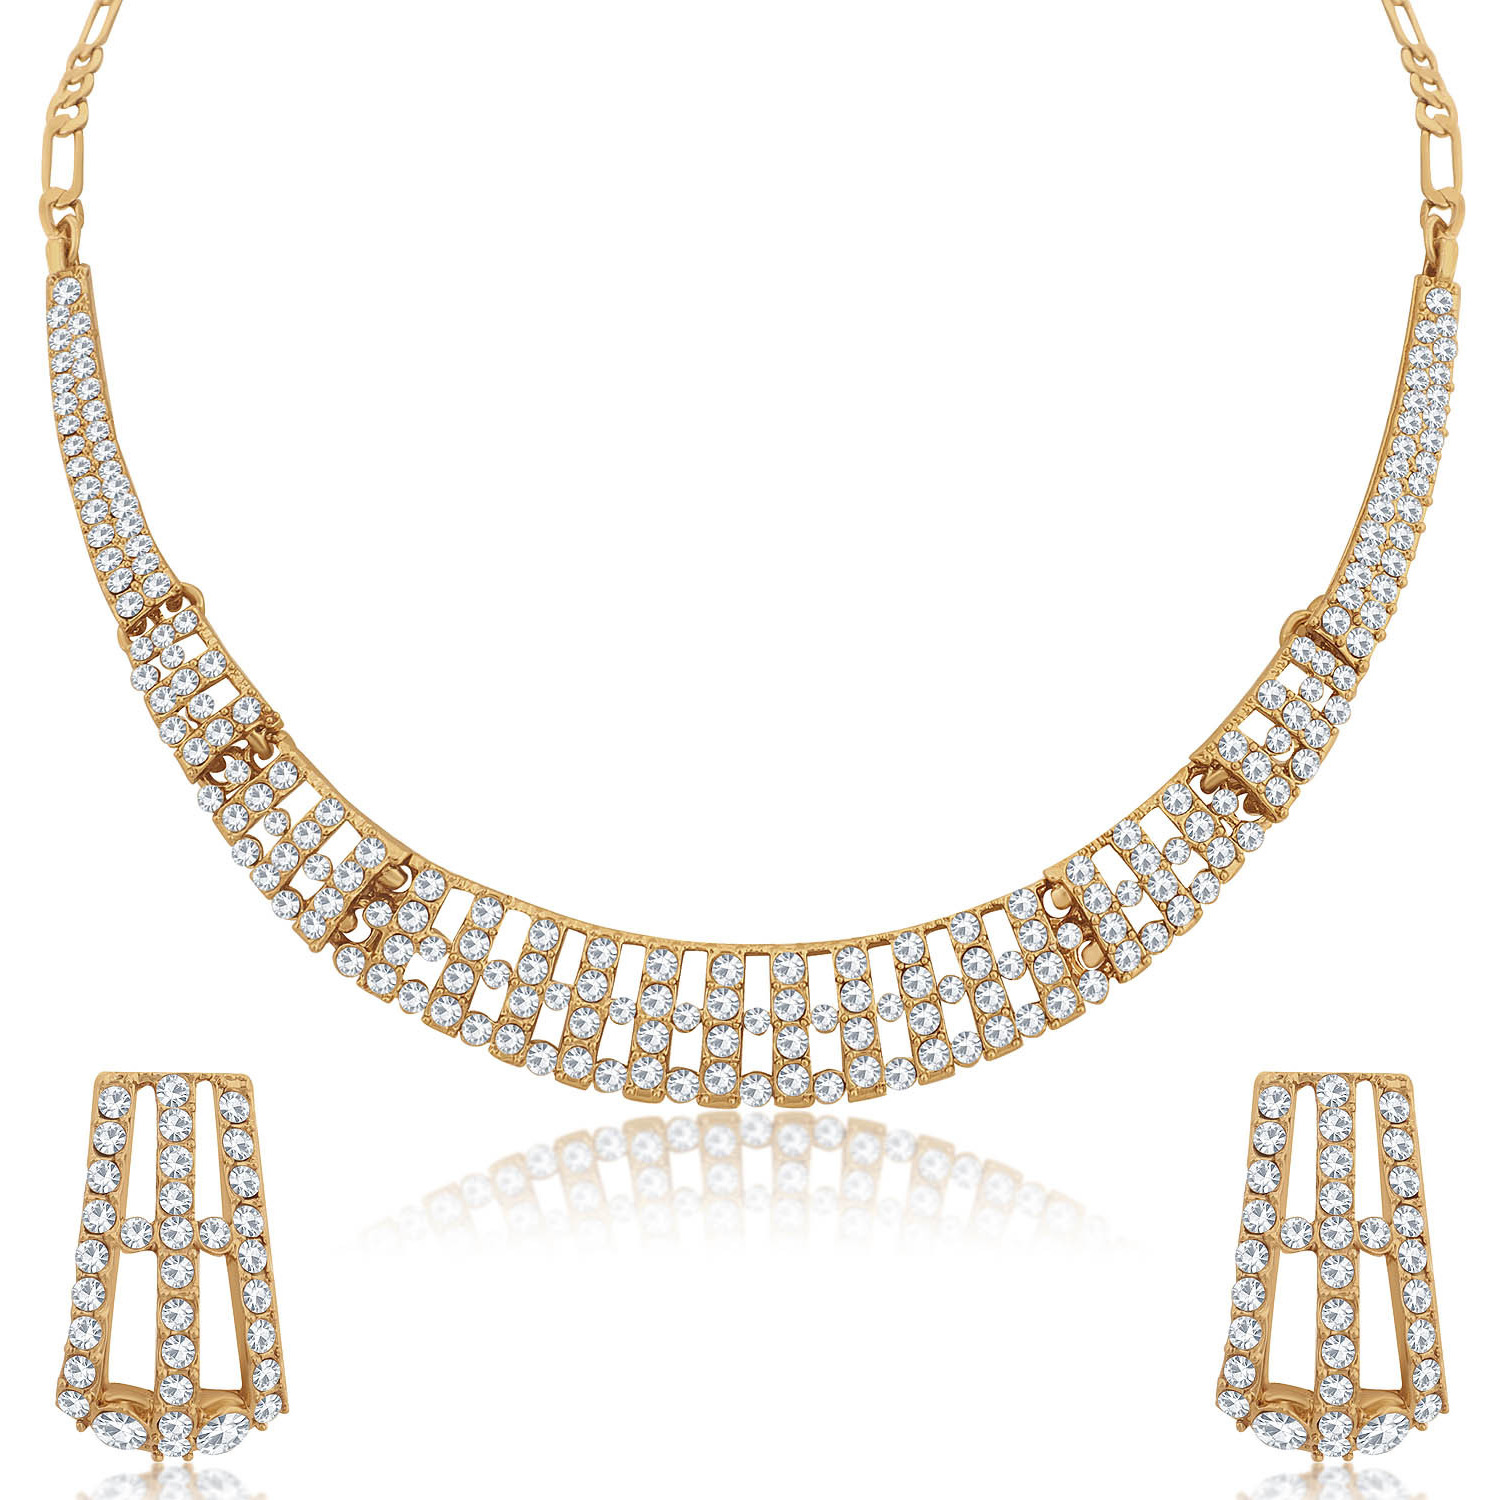 Sukkhi Indian stylish Bollywood jewelry collection Charming Mehandi Gold Plated Necklace Set for Women